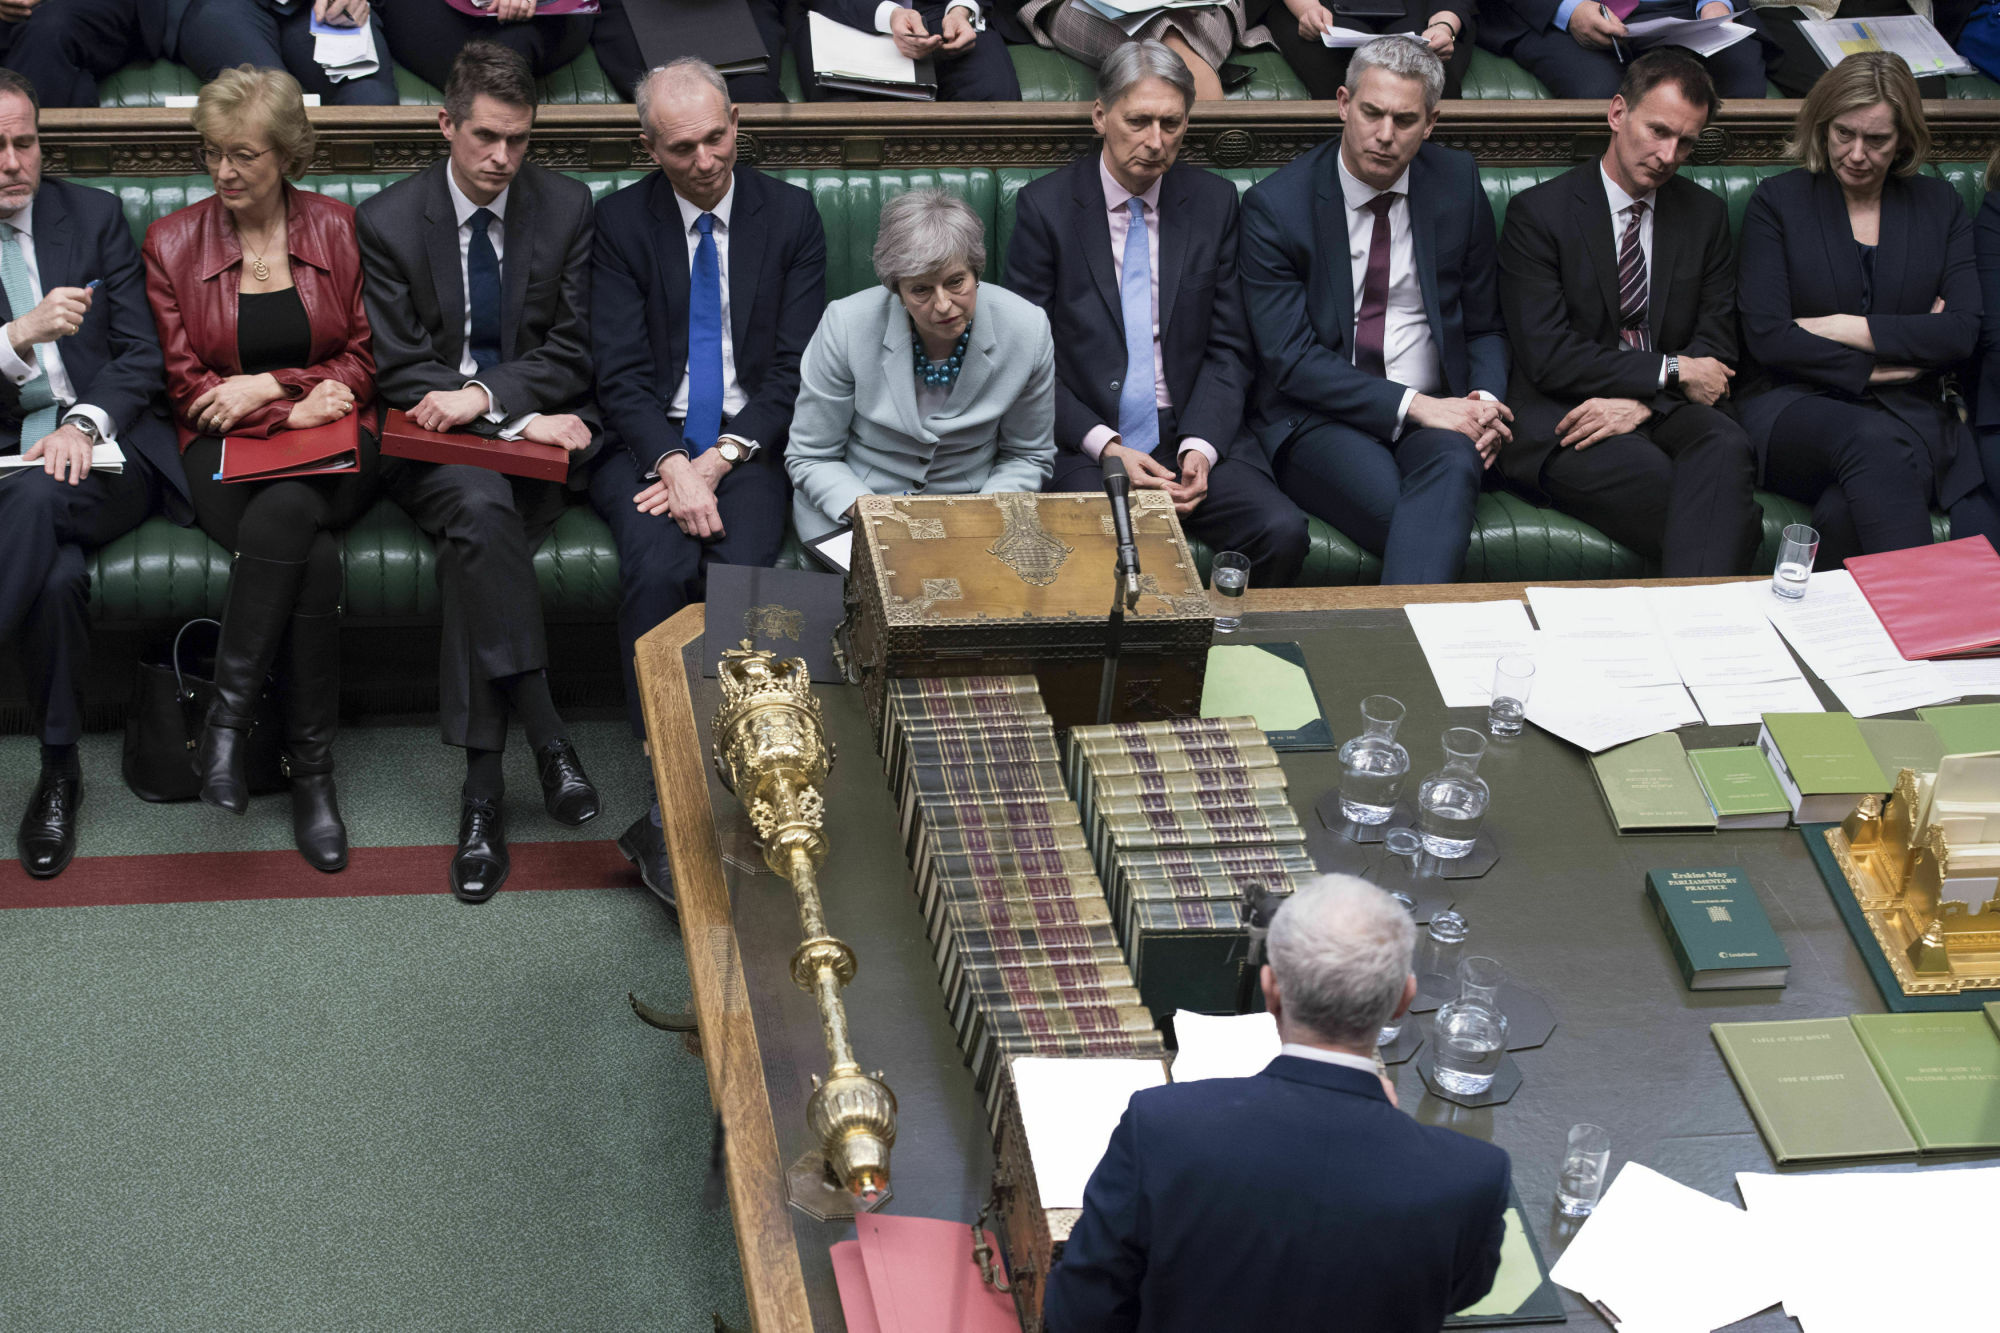 Britain's oposition Labour party leader, Jeremy Corbyn (front), makes a statement after Prime Minister Theresa May made a statement on Brexit to the House of Commons in London Monday. May conceded Monday that Parliament would defeat her twice-rejected Brexit divorce deal again if she put it to a new vote, but said she still hopes to change lawmakers' minds and get the agreement approved. | JESSICA TAYLOR / UK PARLIAMENT / VIA AP